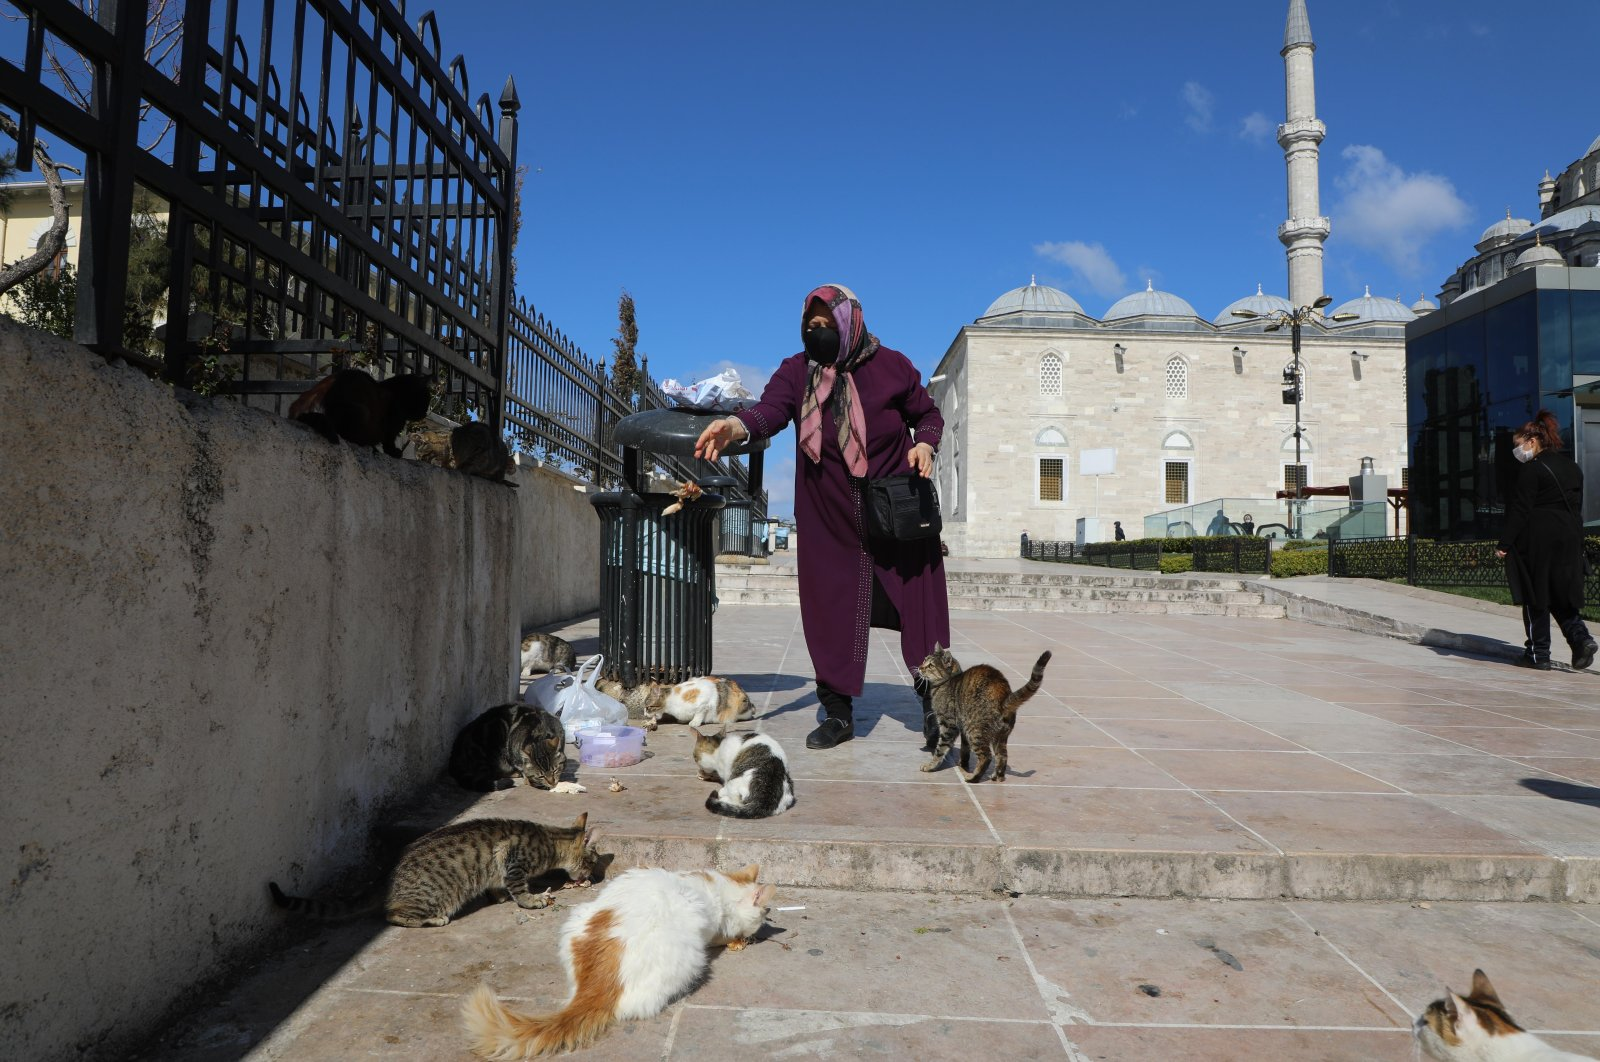 An old lady takes care of cats and puts food for them in the courtyard of the Fatih Mosque in Istanbul, Turkey, April 8, 2020. (Photo by Getty Images)